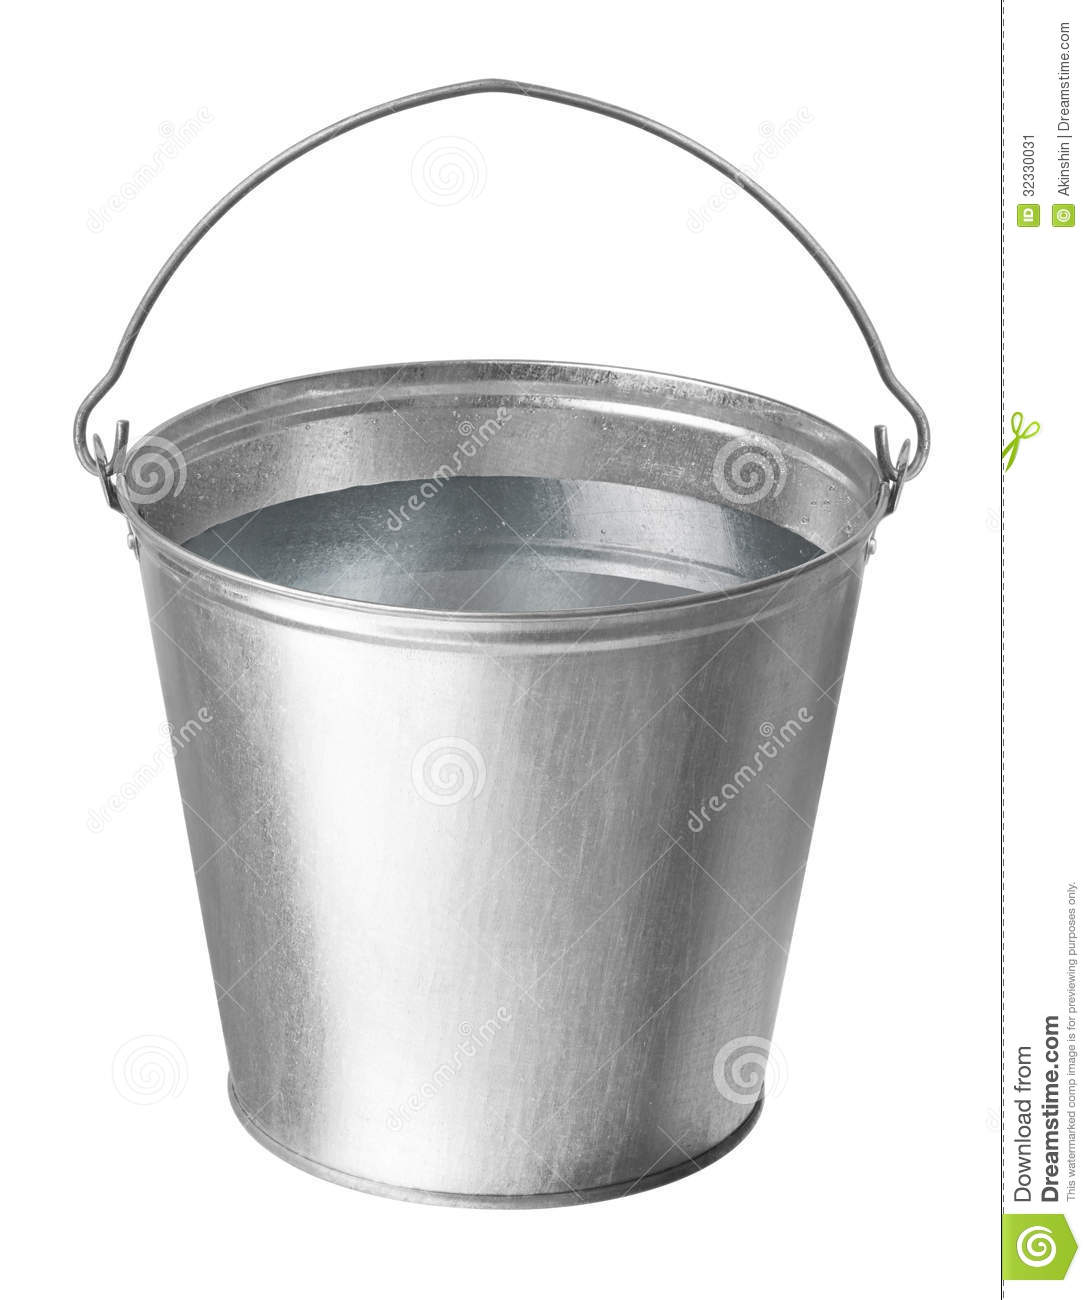 metal bucket with water stock image image of full metallic 32330031